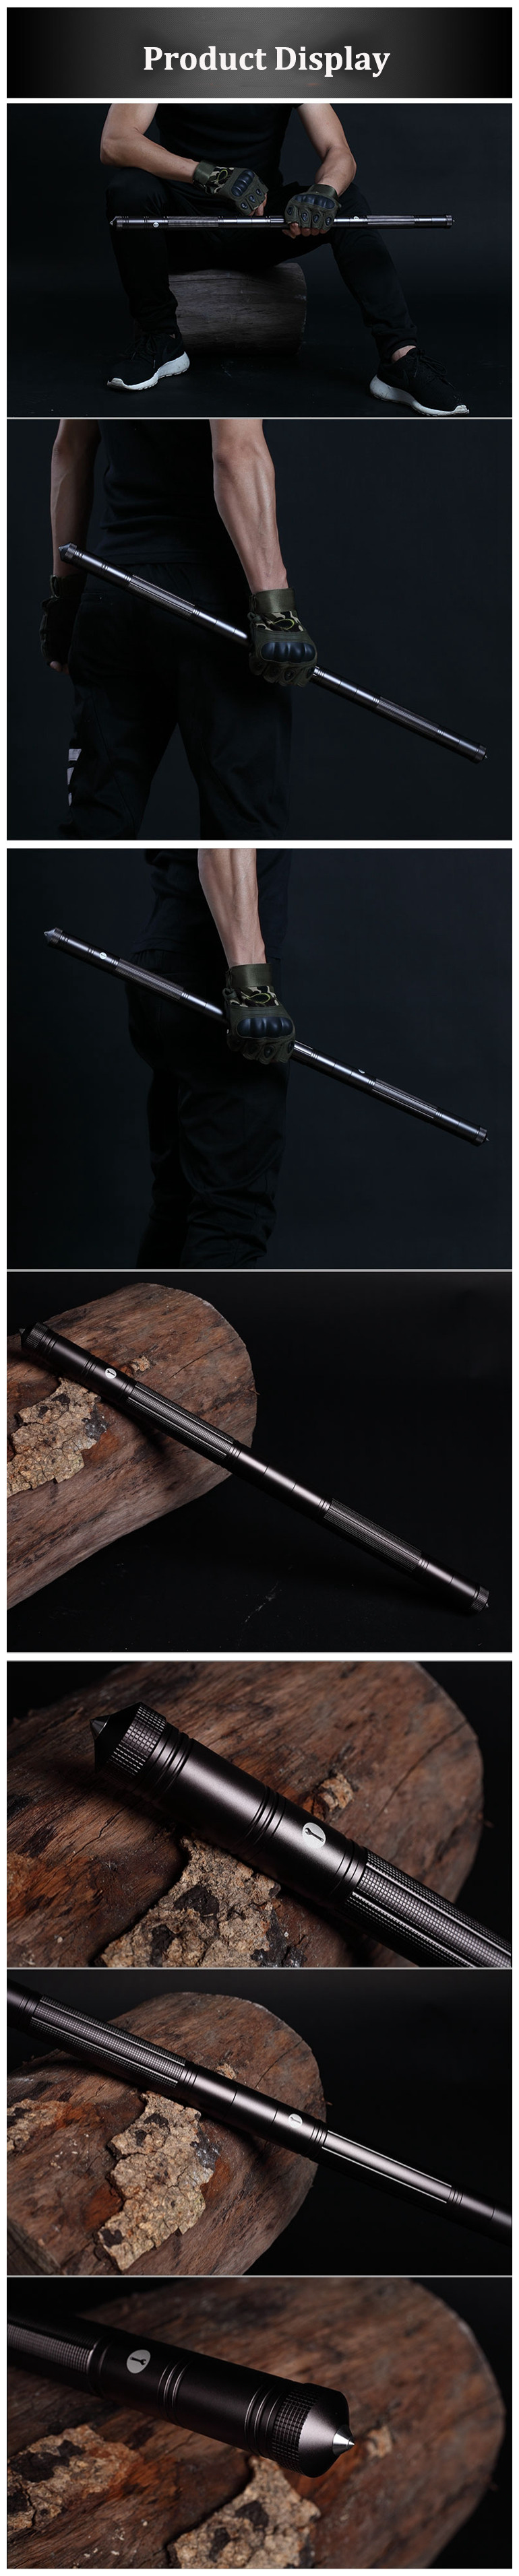 IPRee Outdoor Camping DIY Self Defense Stick Safety Multi-Functional Defensive Protection Rod Survival Tool